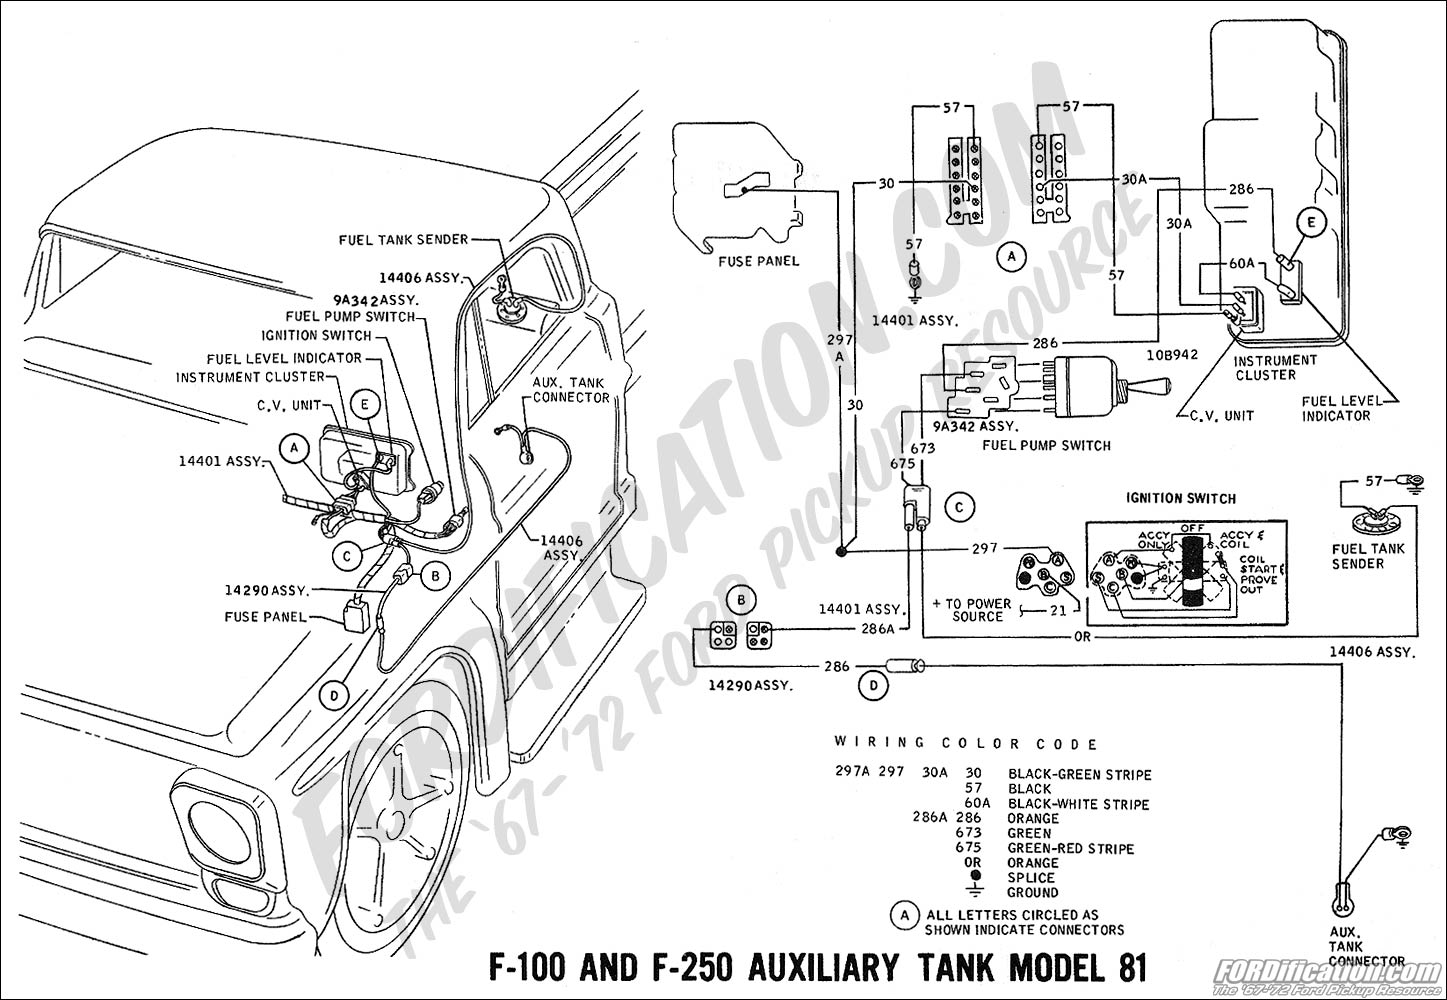 wiring_69aux fuel 69 f100 wiring diagram 1973 ford f100 wiring diagram \u2022 wiring Ford E-350 Fuse Box Diagram at reclaimingppi.co